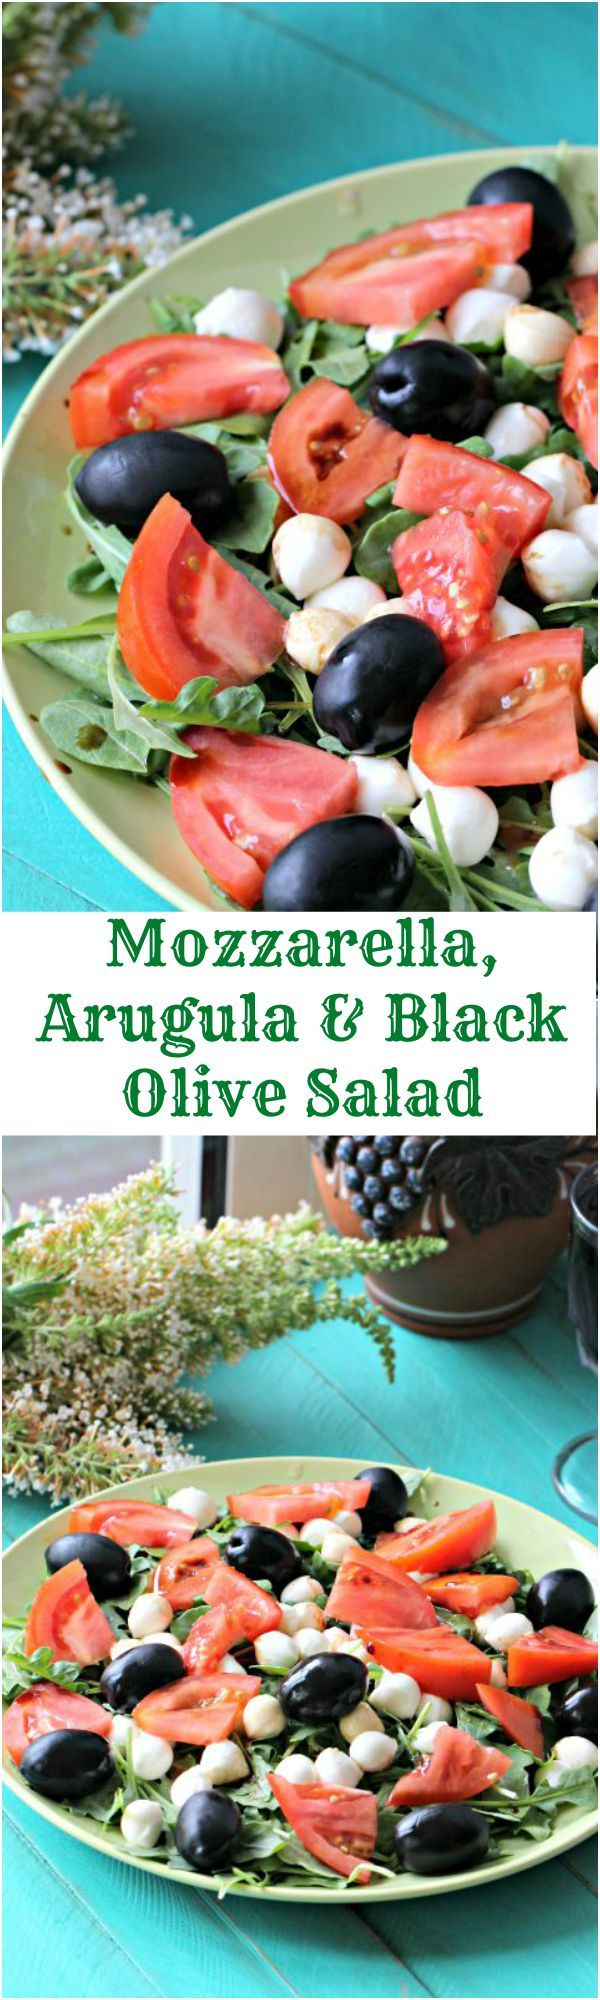 Mozzarella and Arugula Salad with Tomatoes & Black Olives - Peas and Peonies